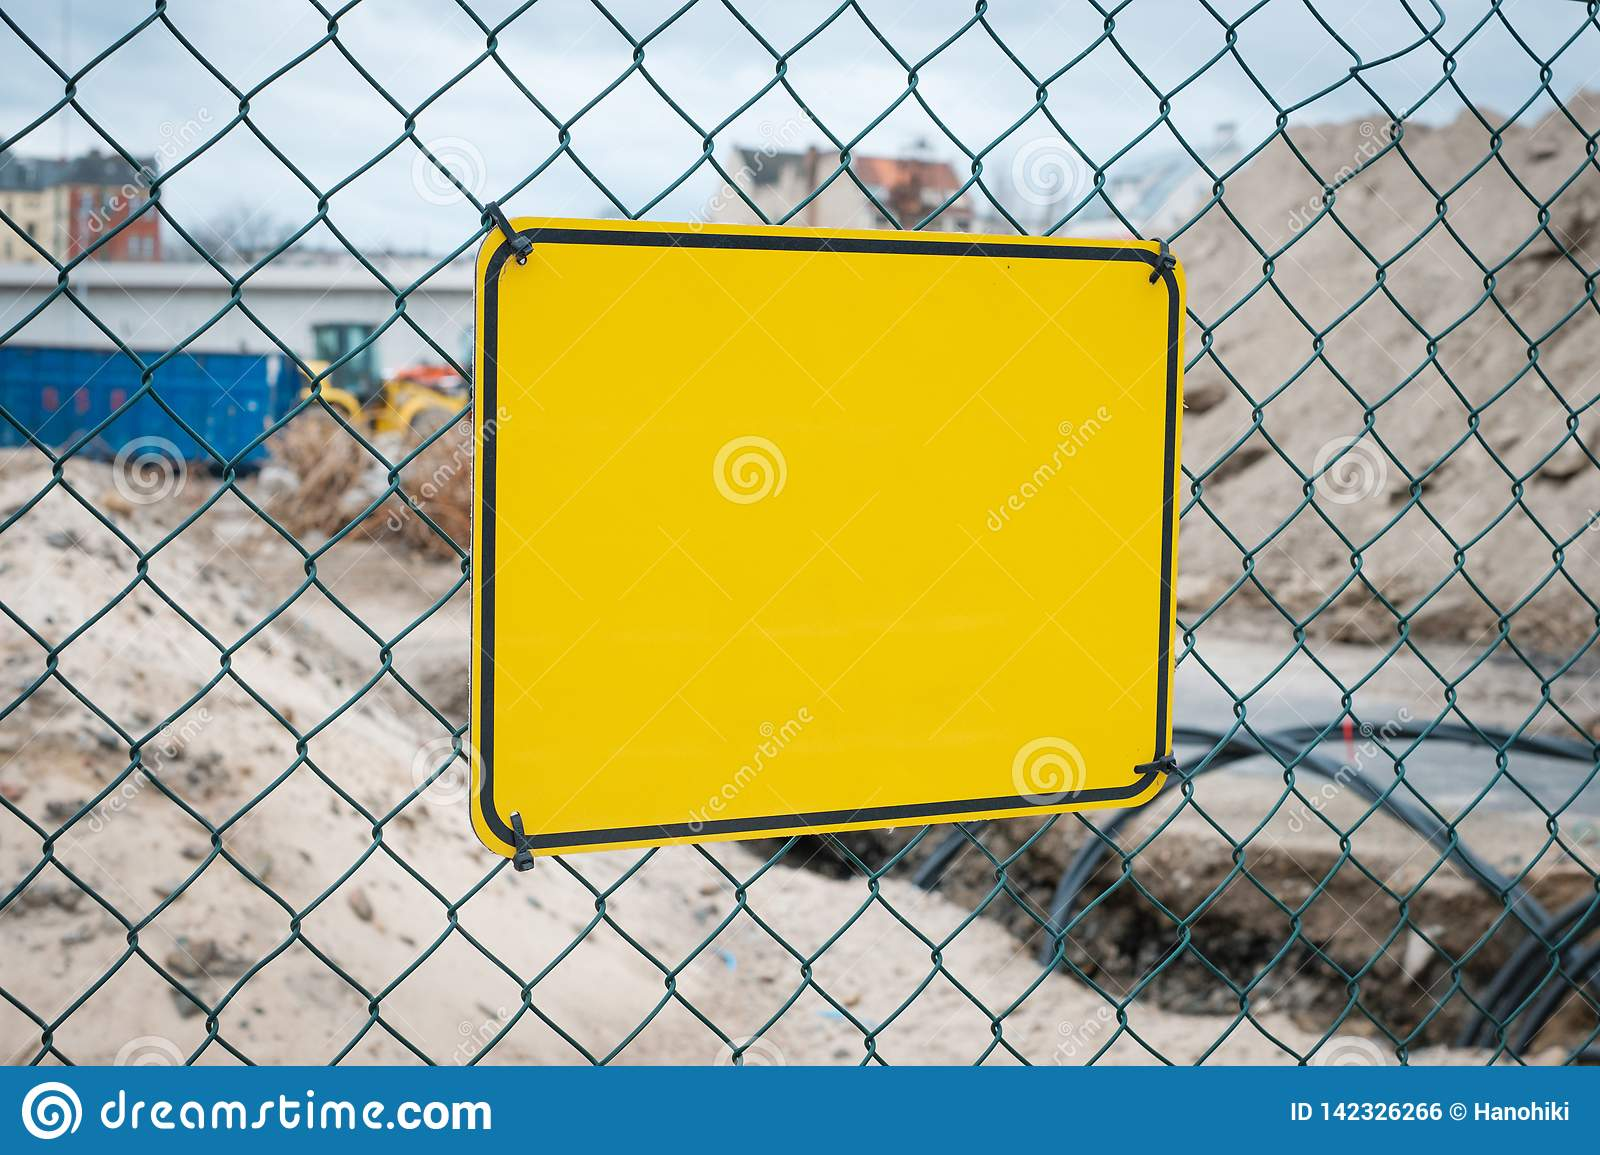 Empty yellow sign on construction site fence - warning sign mock-up